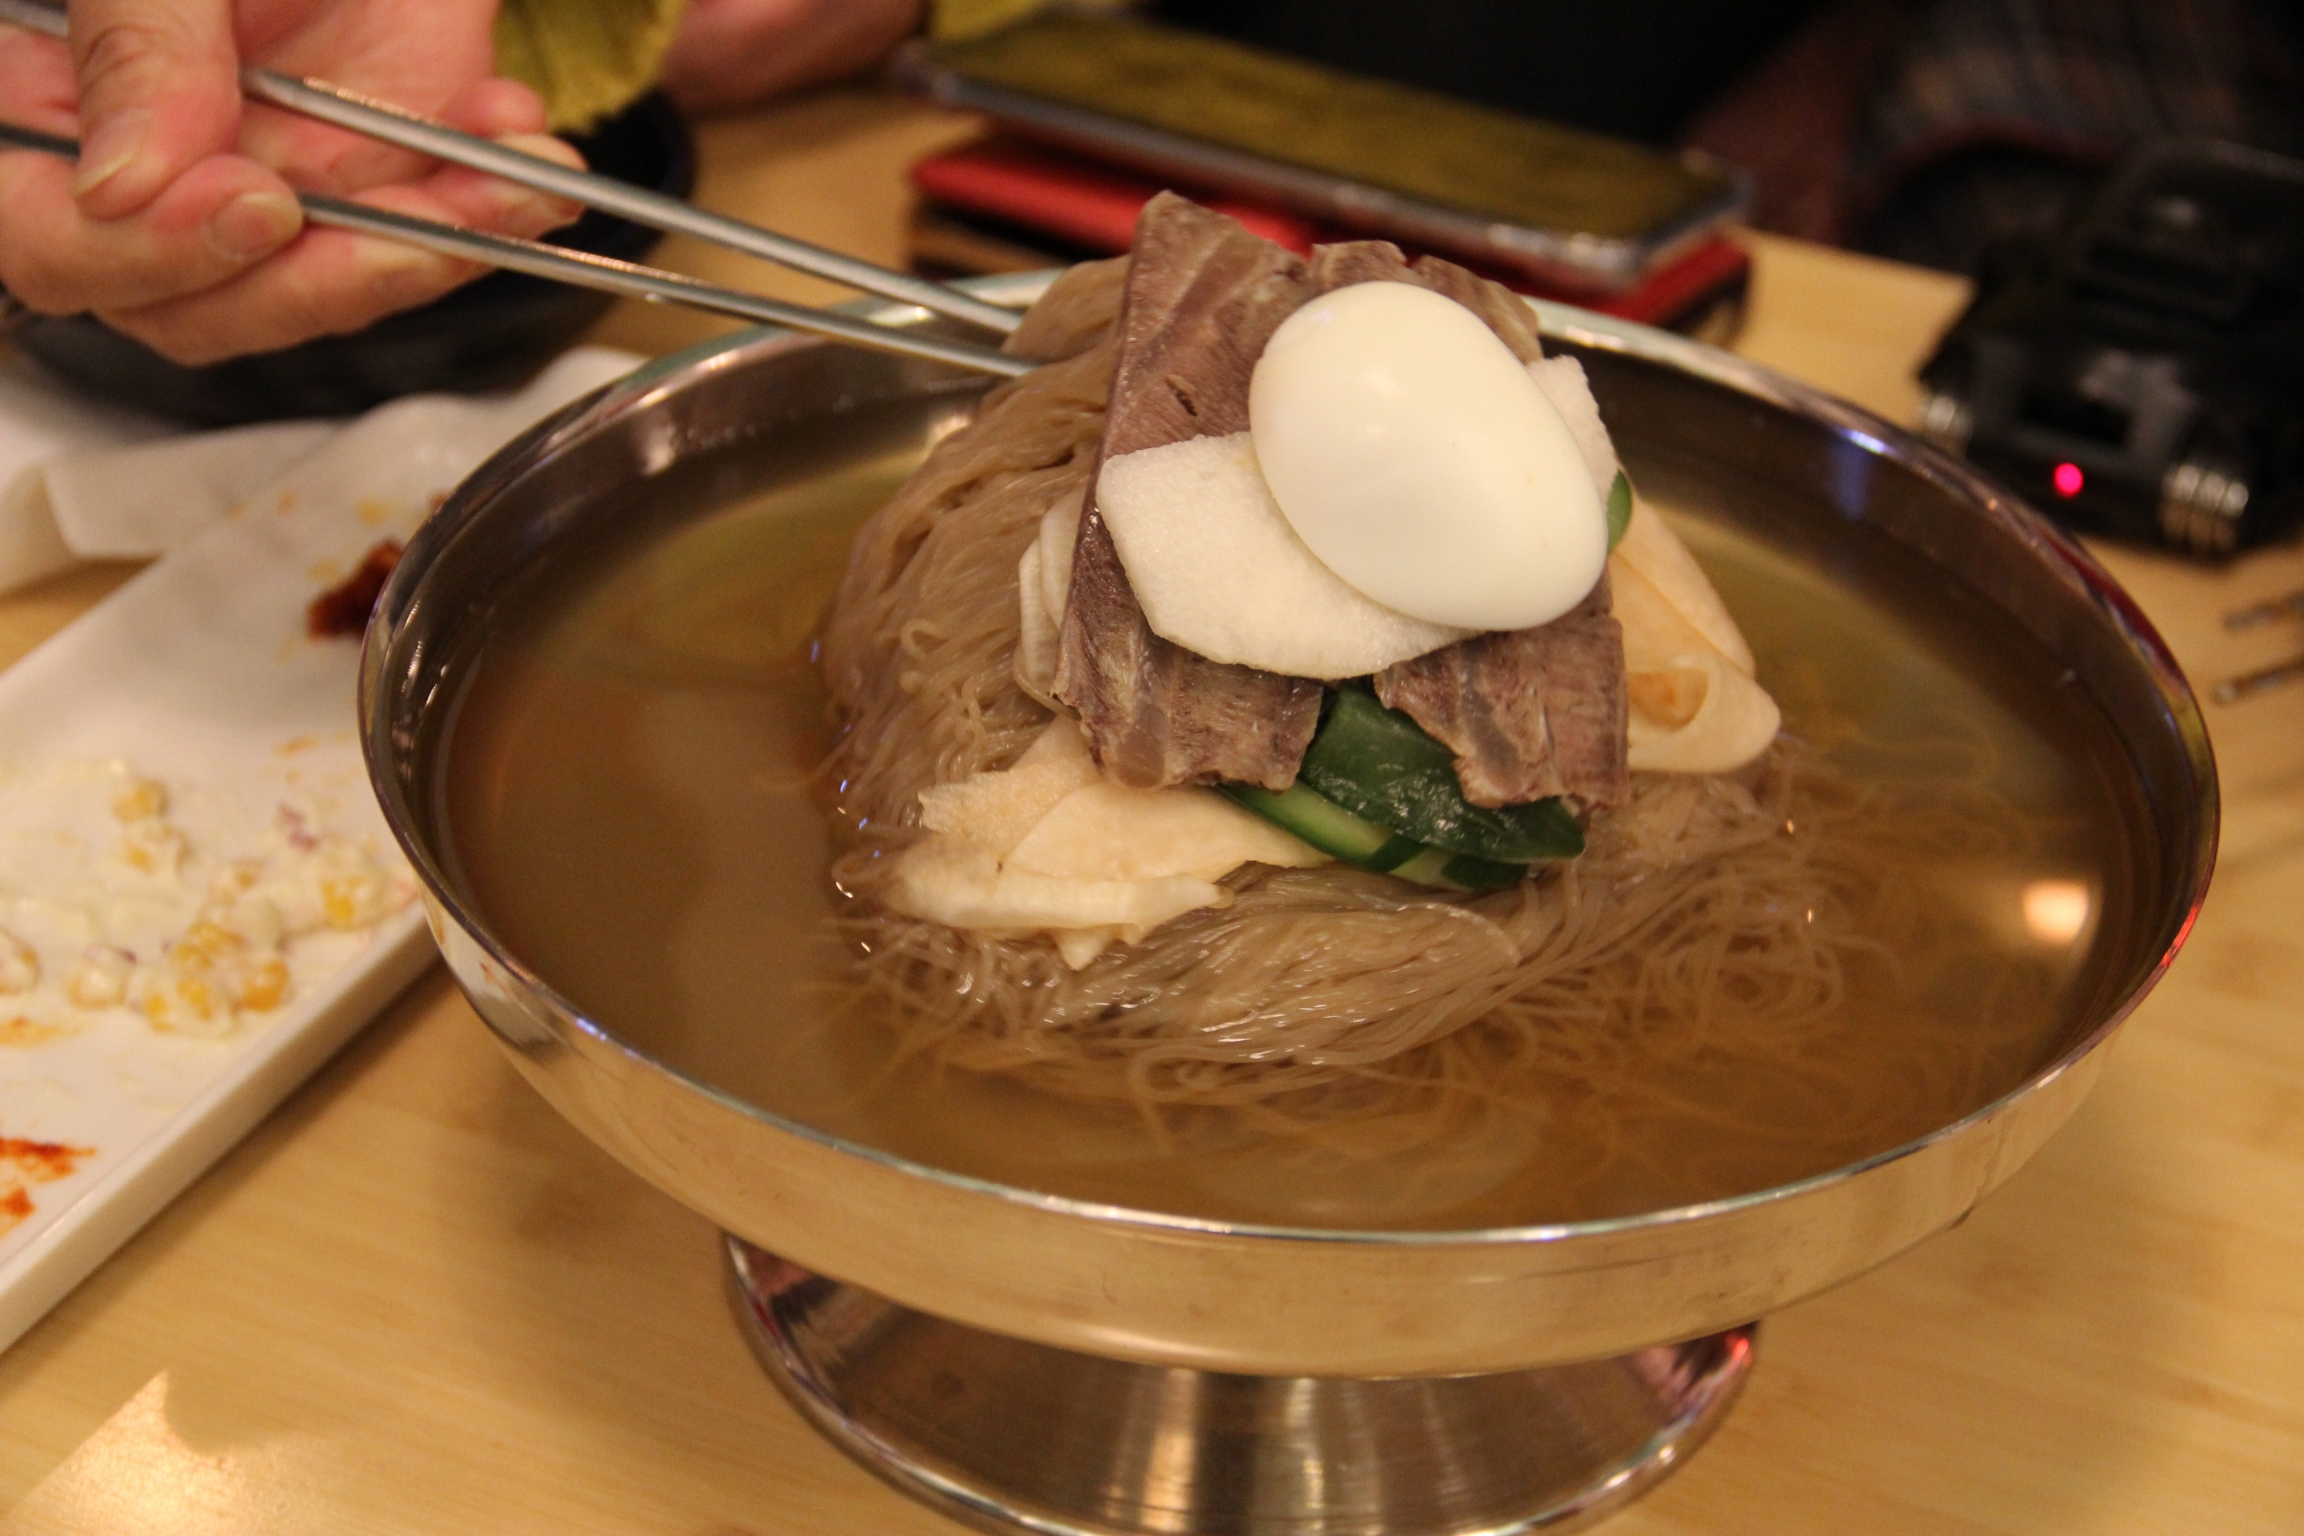 Kim Eun-joo was surprised that the mool naengmyun (cold noodles) were served in a wide-rimmed brass goblet, just like in North Korea.